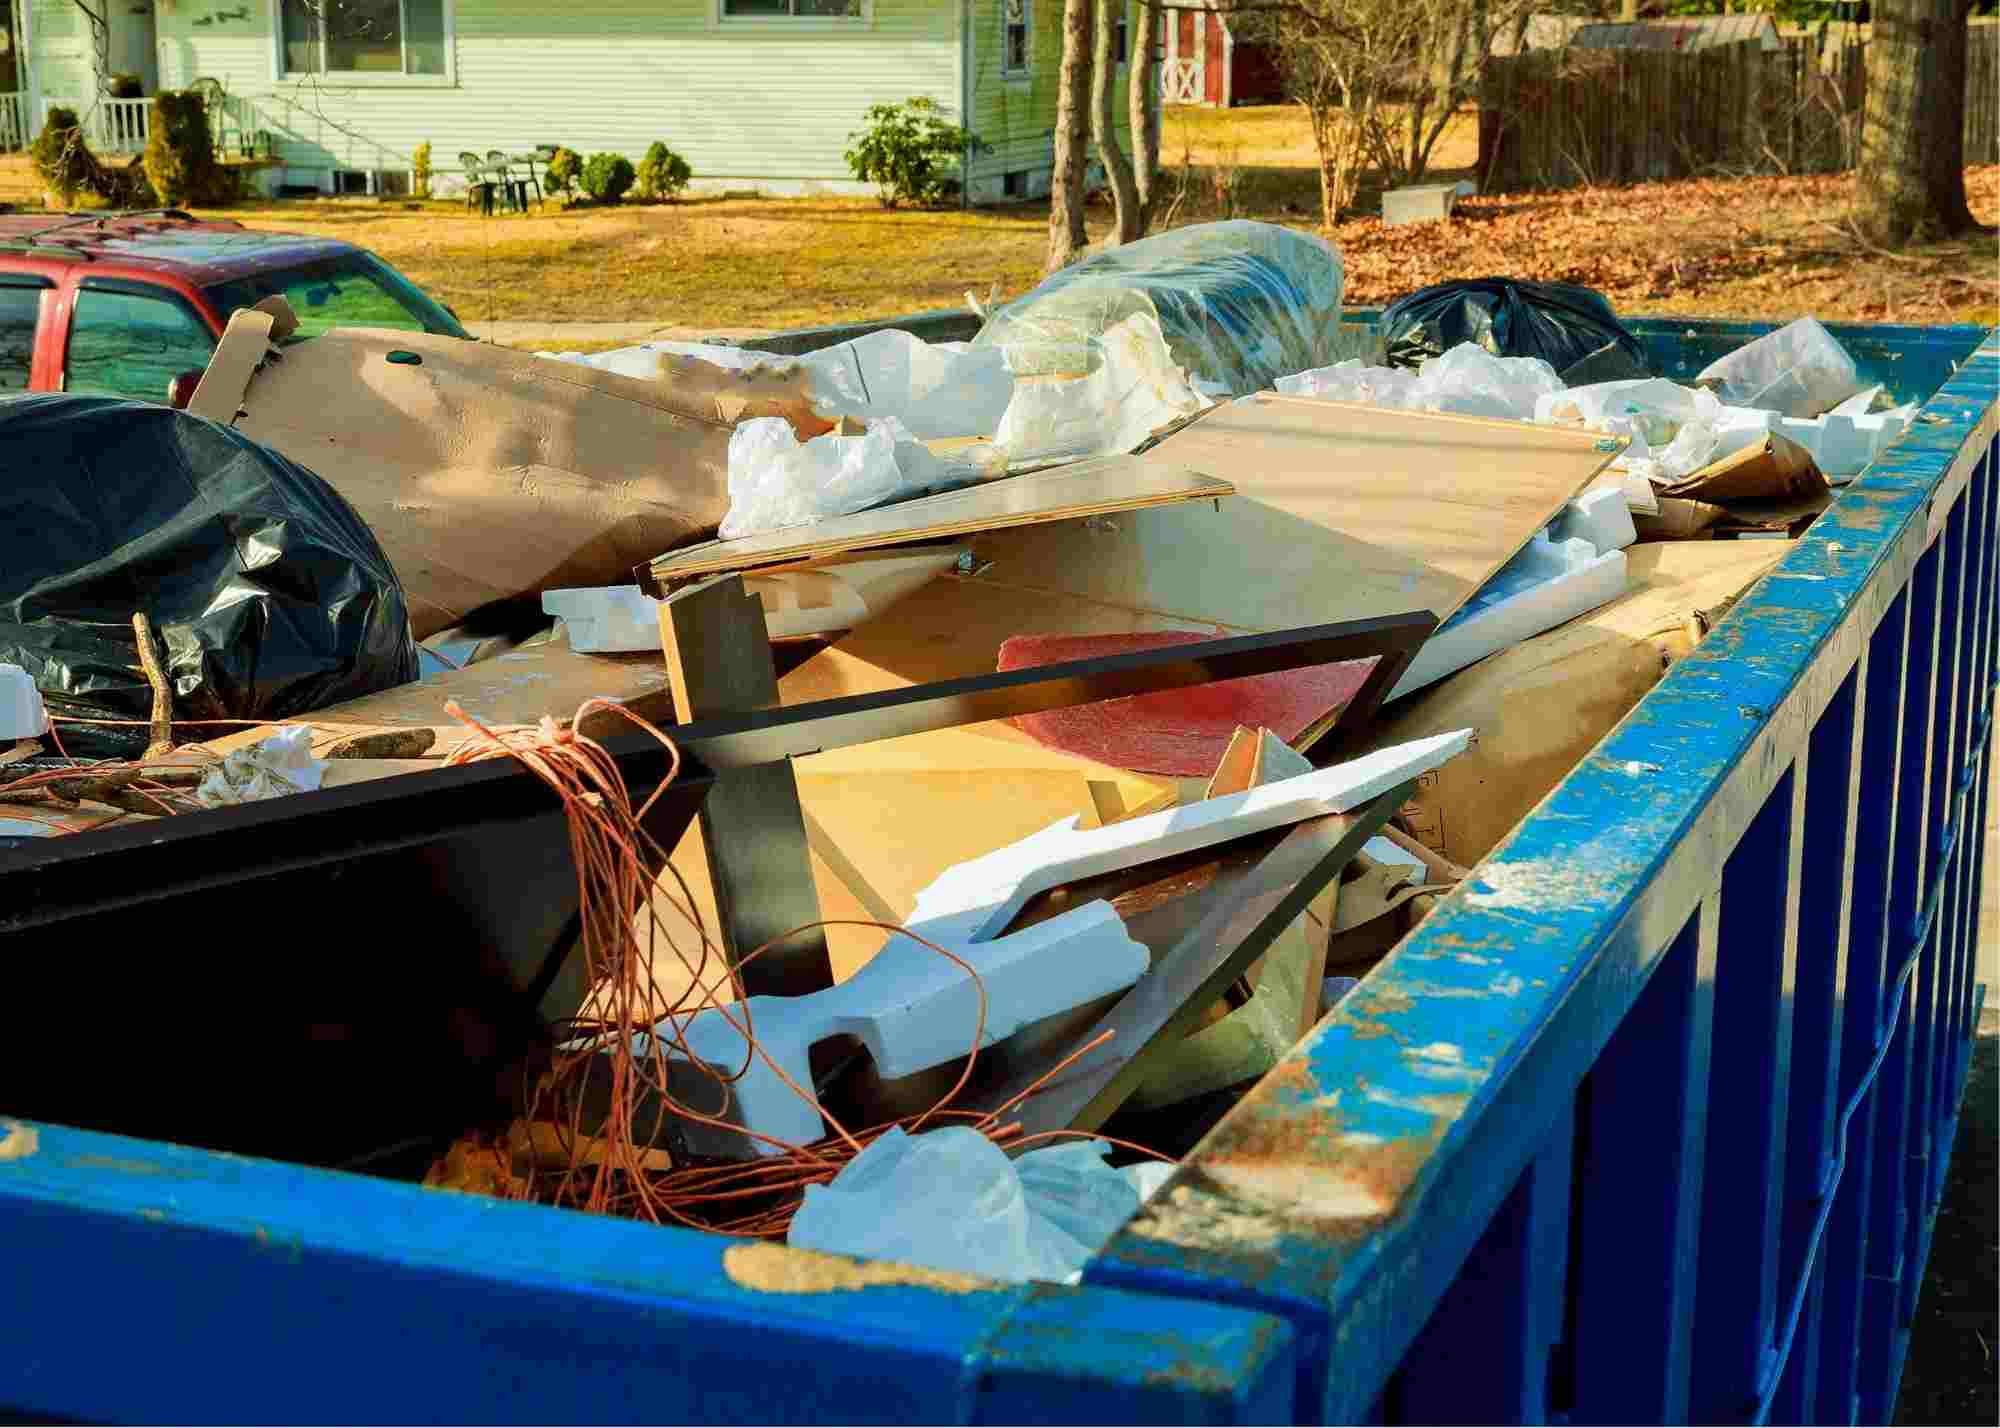 Junk Removal Brooklyn projects are very in demand. On this picture you see a junk removal dumpster filled in with furniture and household items. Our clients inherited a house and needed to remove the junk. The image was taken in April of 2021